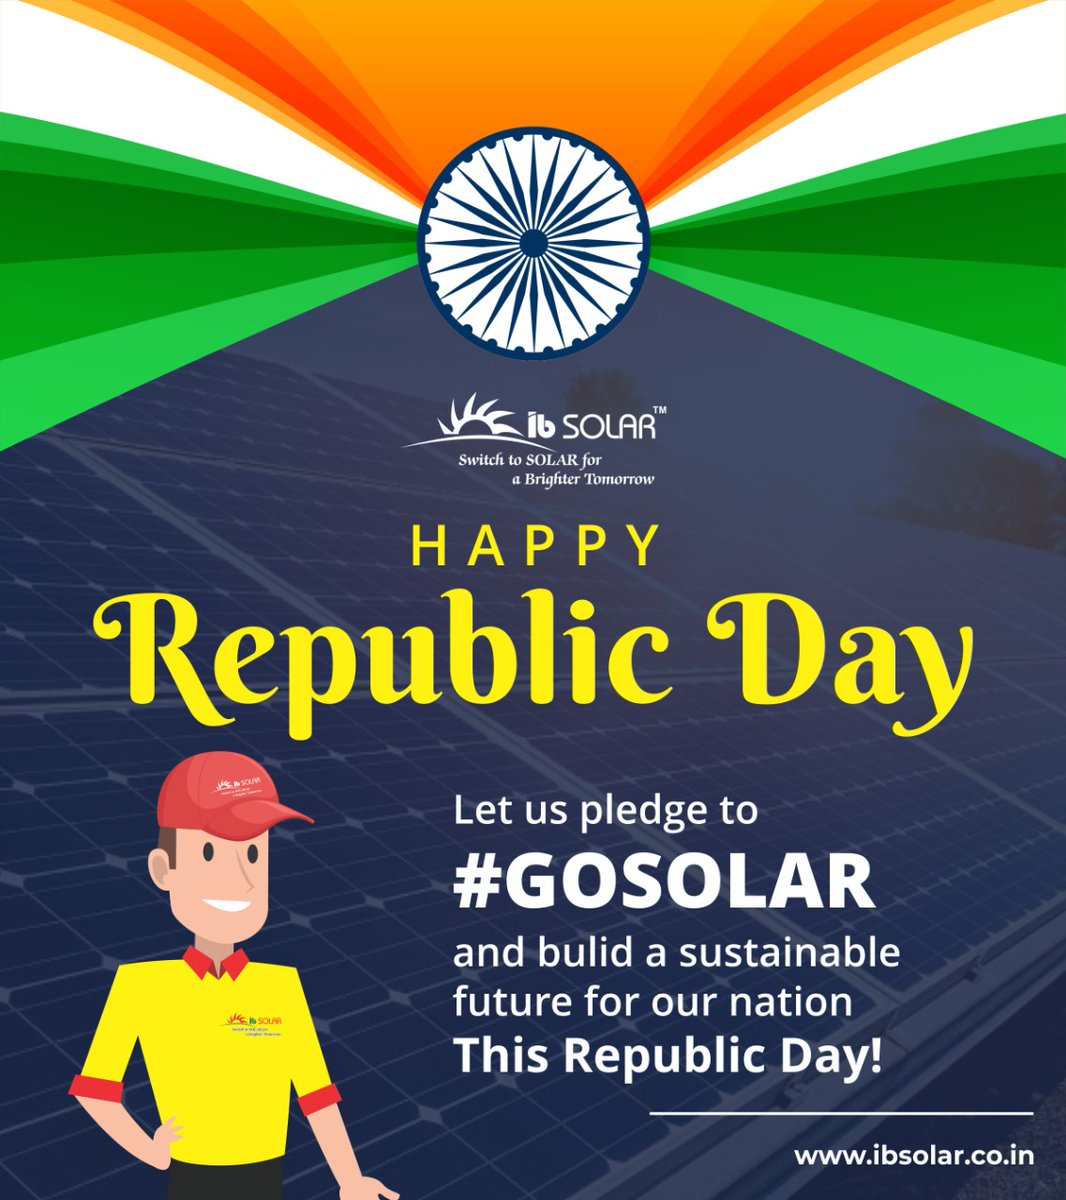 Let Us Pledge To #GOSOLAR And Build A Sustainable Future For A Nation   Happy Republic Day  #republicdaycelebration #mumbai #manipulation #snapseed #cbedits #follow #vsco